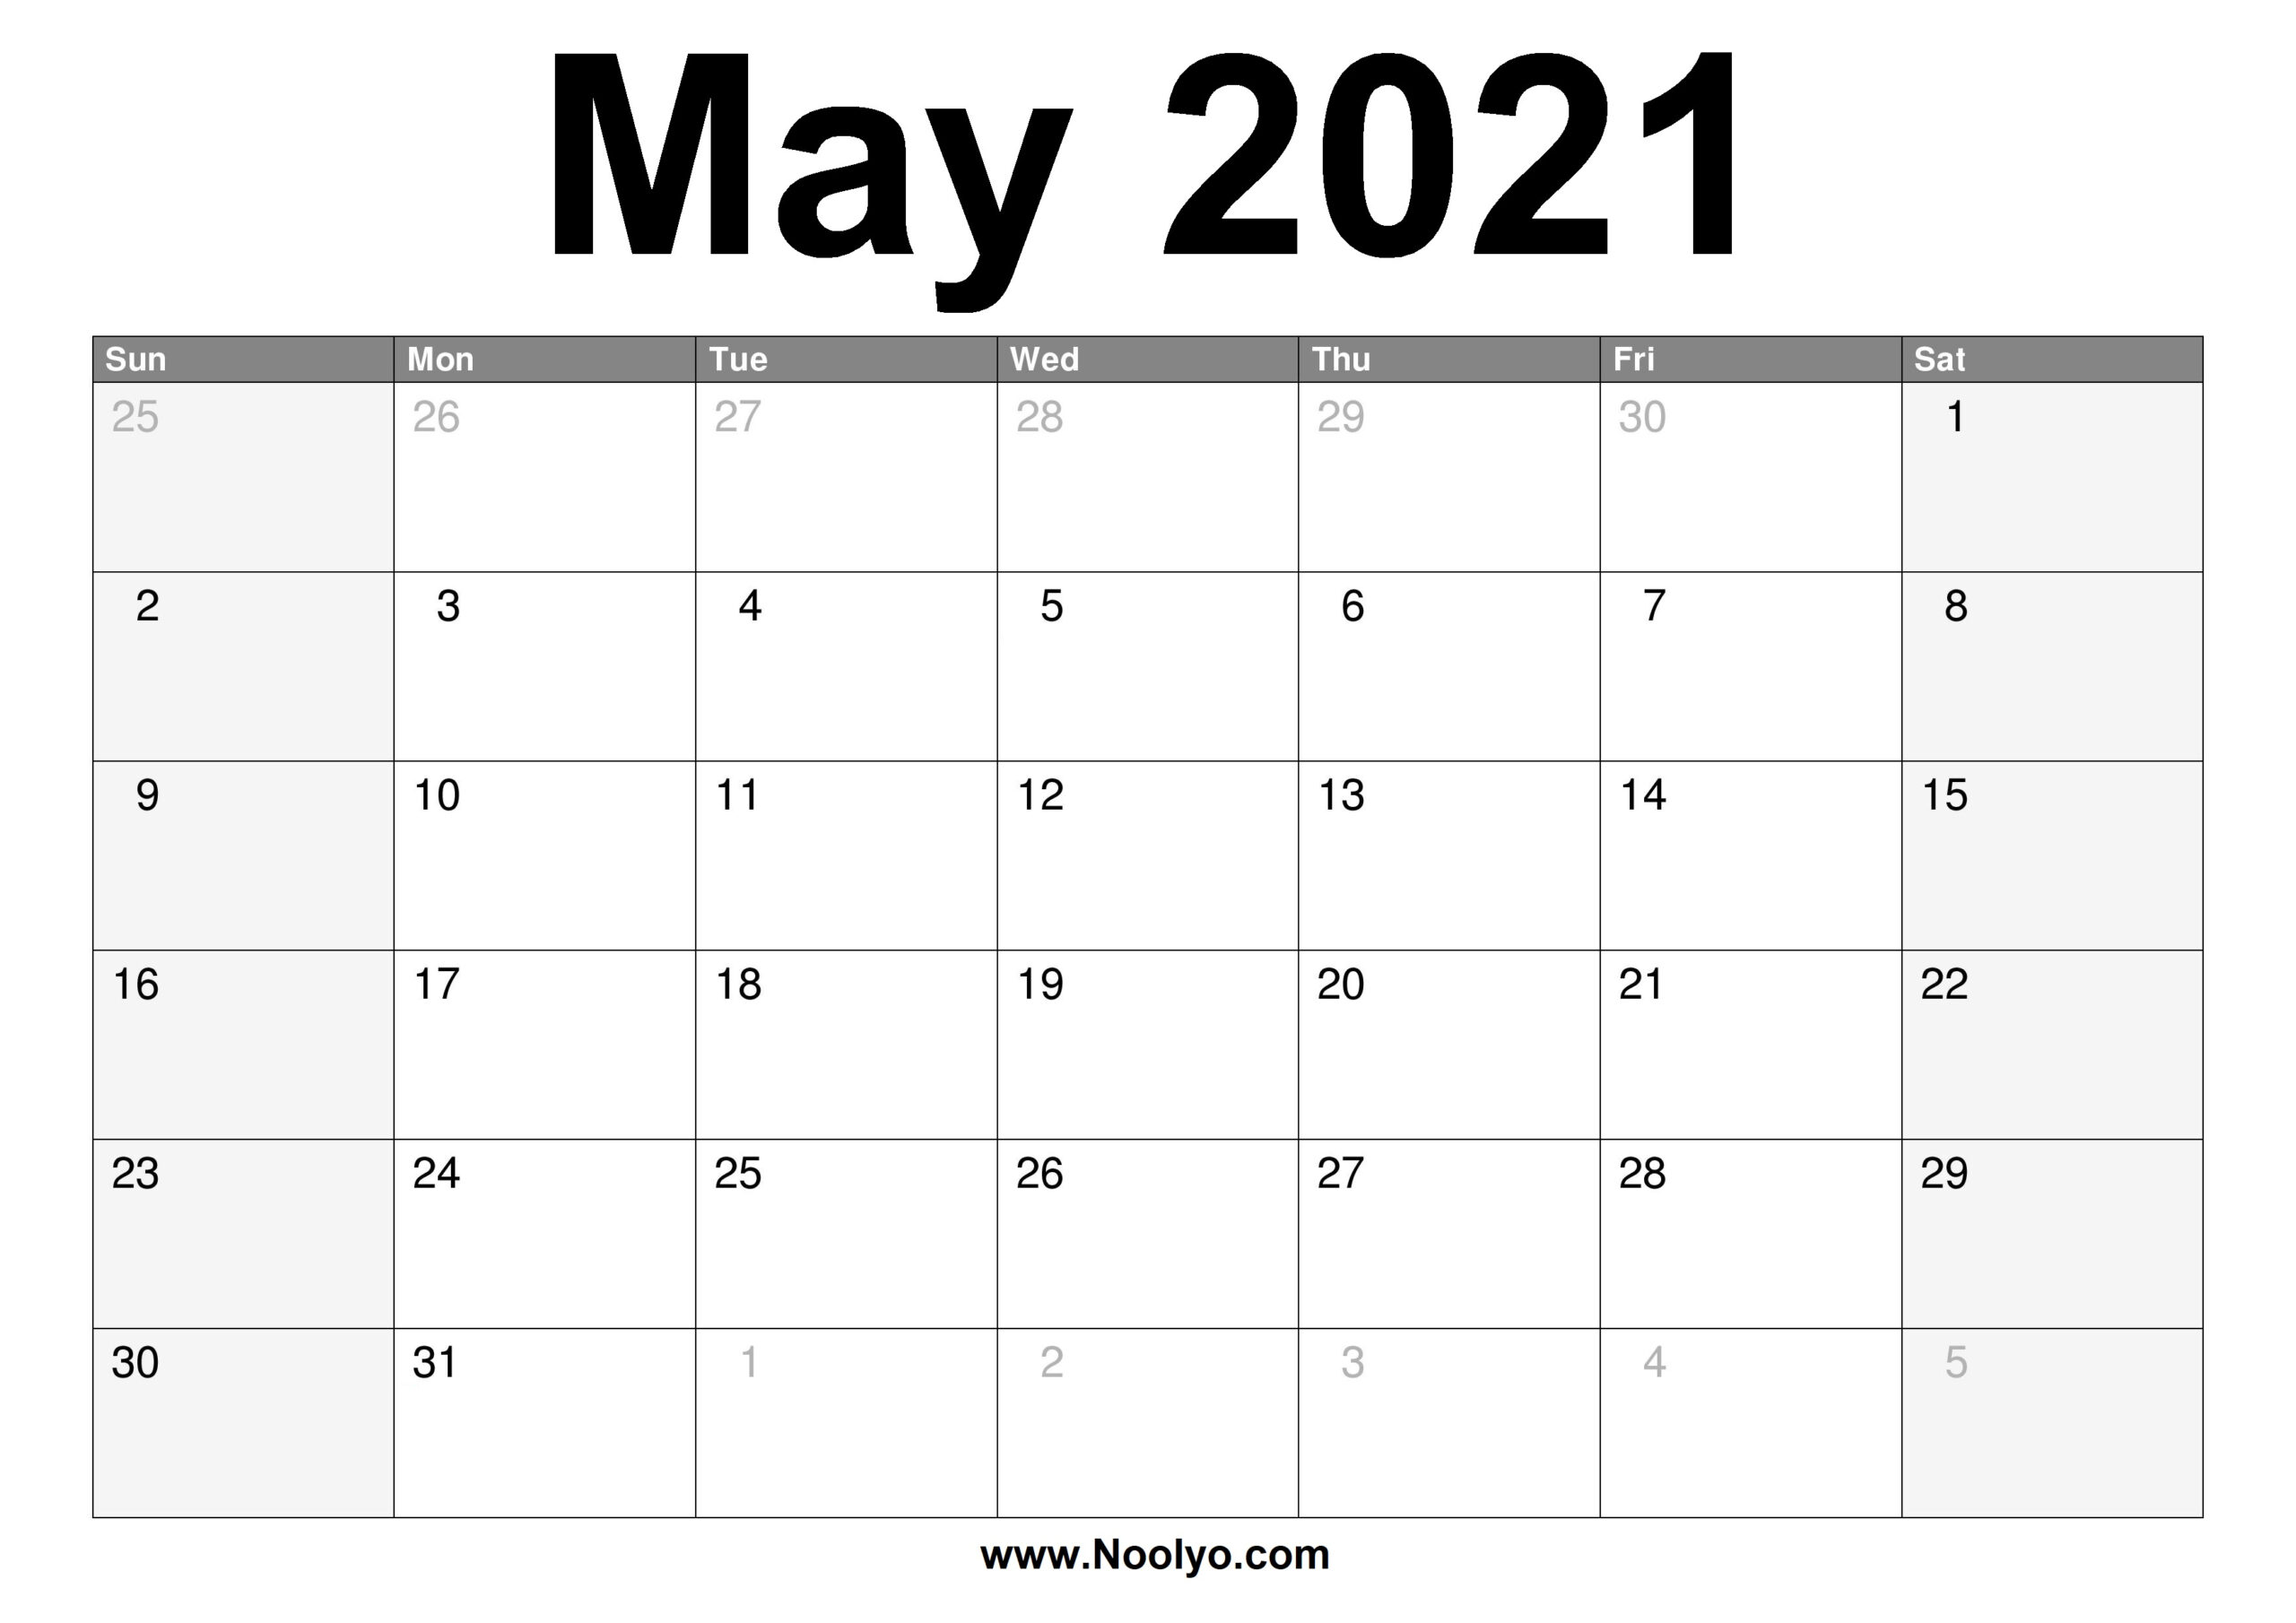 May 2021 Calendar Printable – Free Download – Noolyo